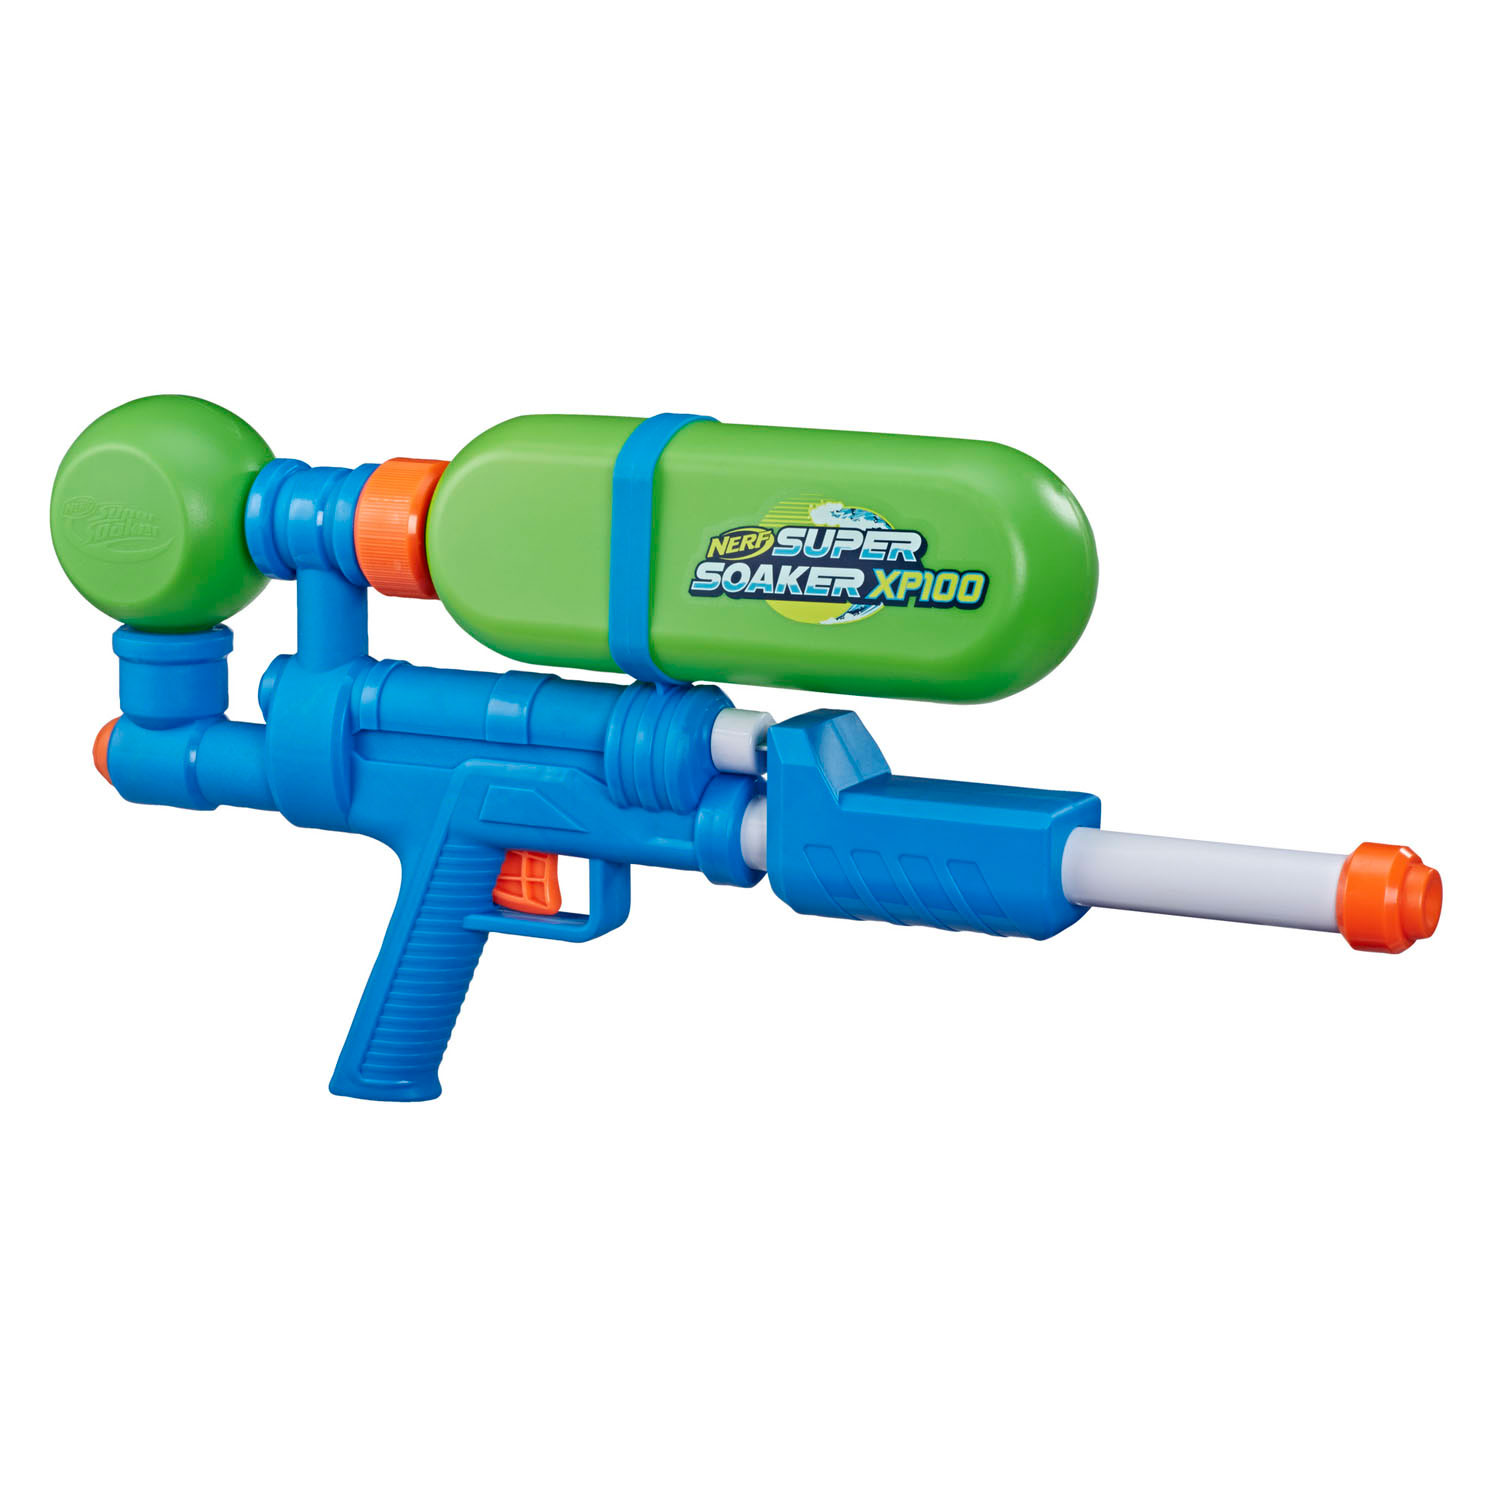 Nerf Super Soaker XP100 Waterpistool